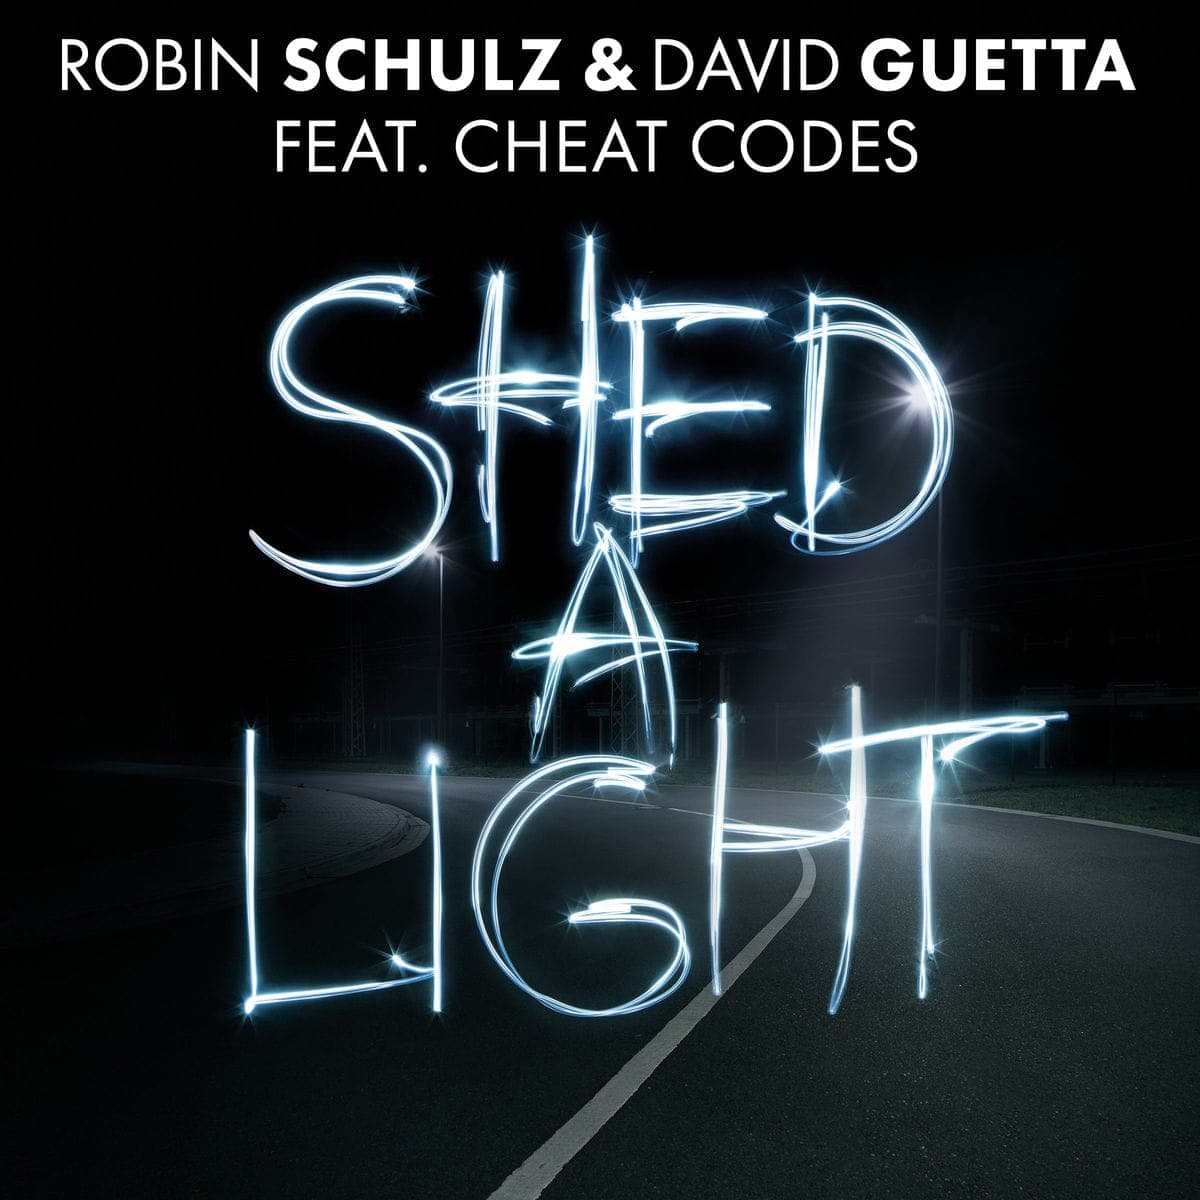 Shed A Light - Robin Schulz & David Guetta